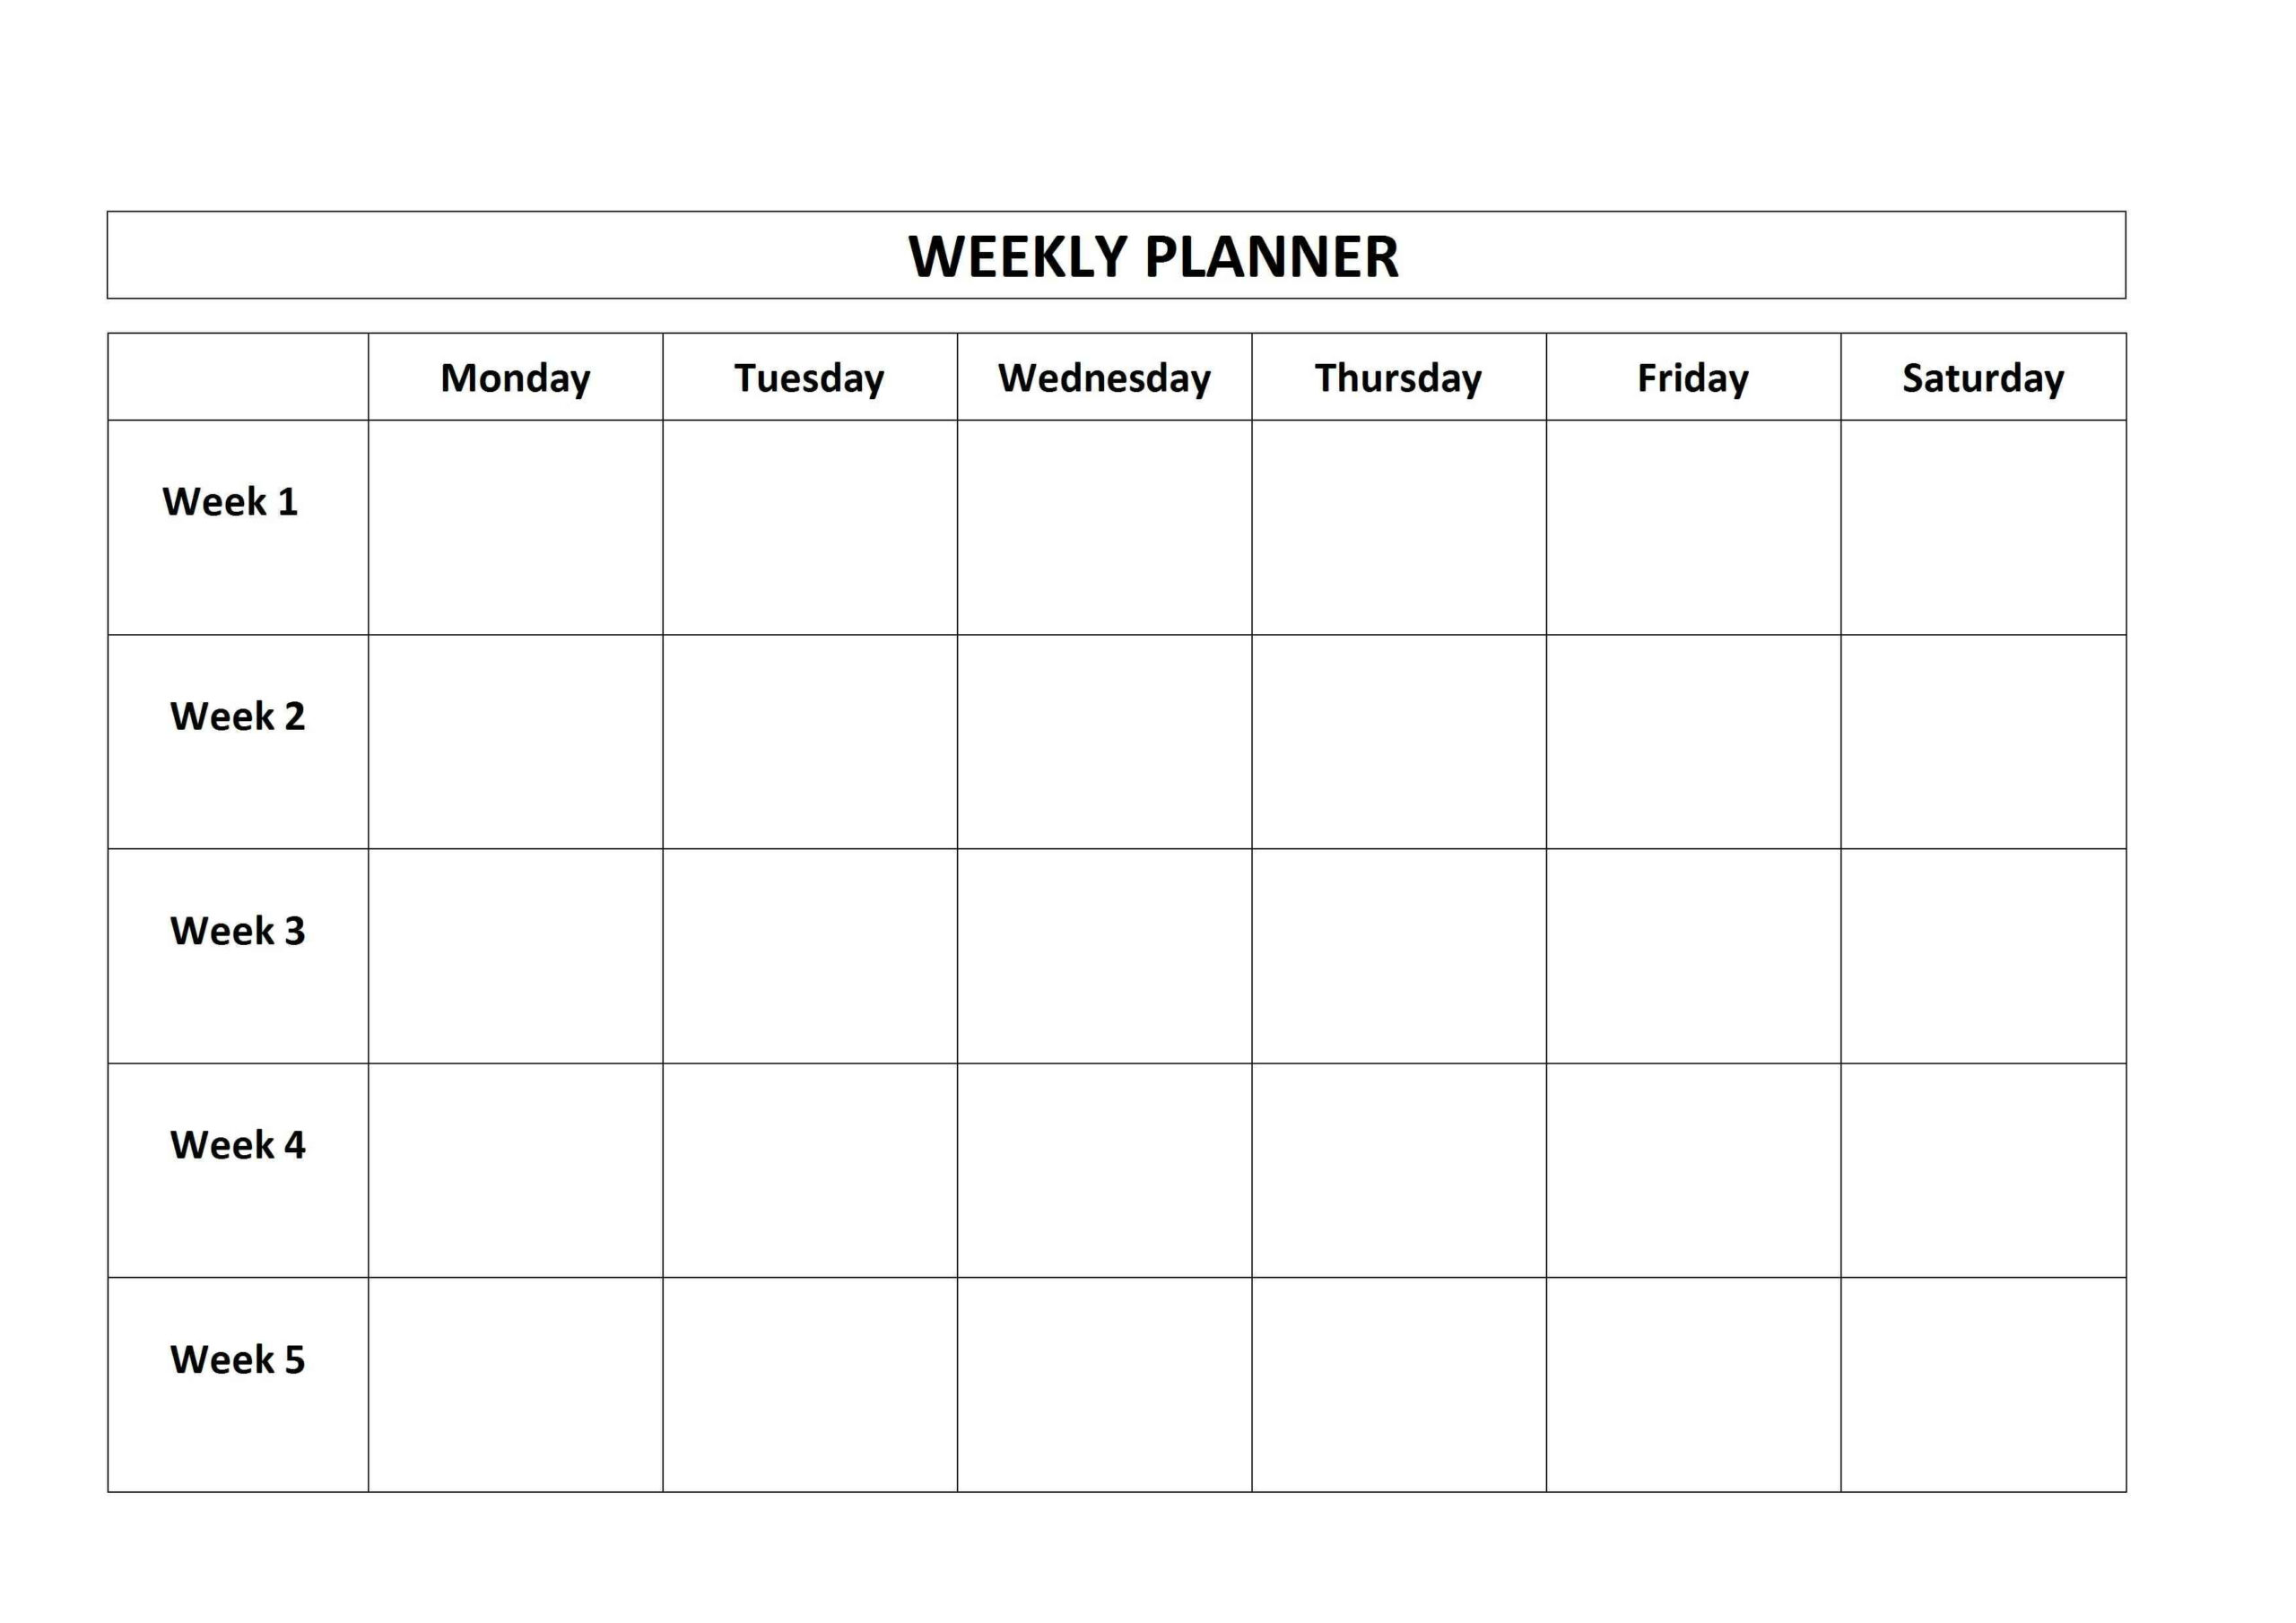 Monday To Friday Planner Template | Calendar For Planning with regard to Saturday Through Friday Calendar